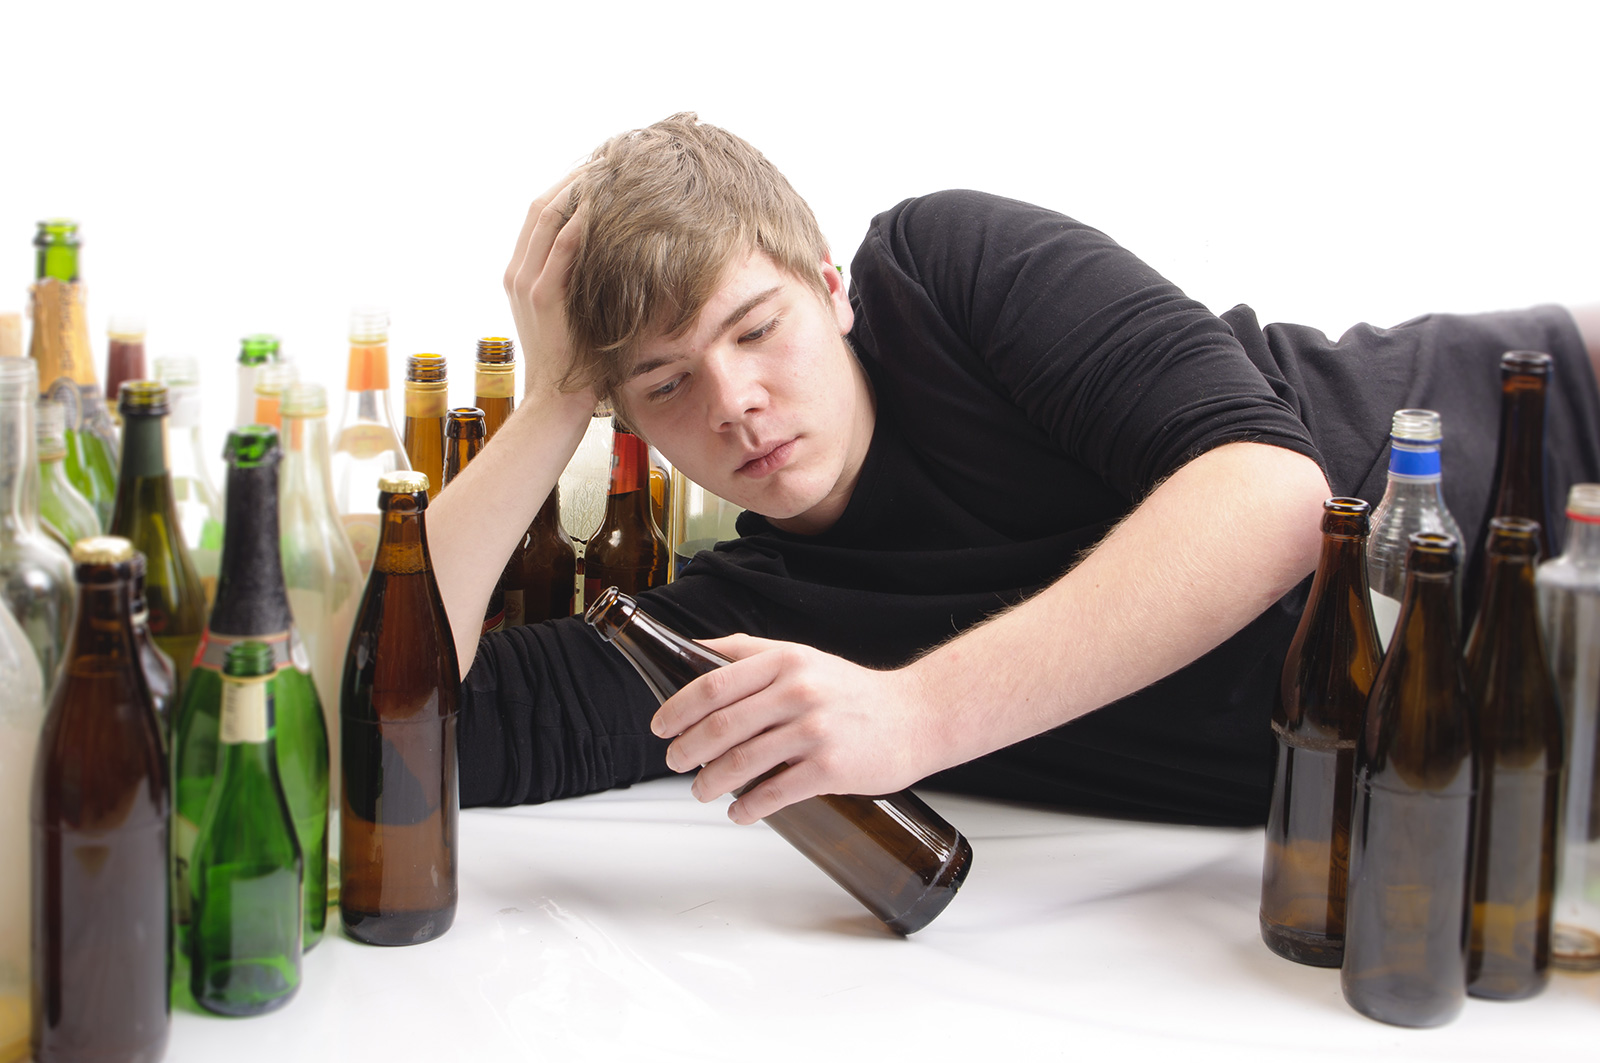 teenagers and alcohol Here in this argumentative essay on drinking age you will read about the influence of alcohol on teenagers and reasons that lead them to drinking.